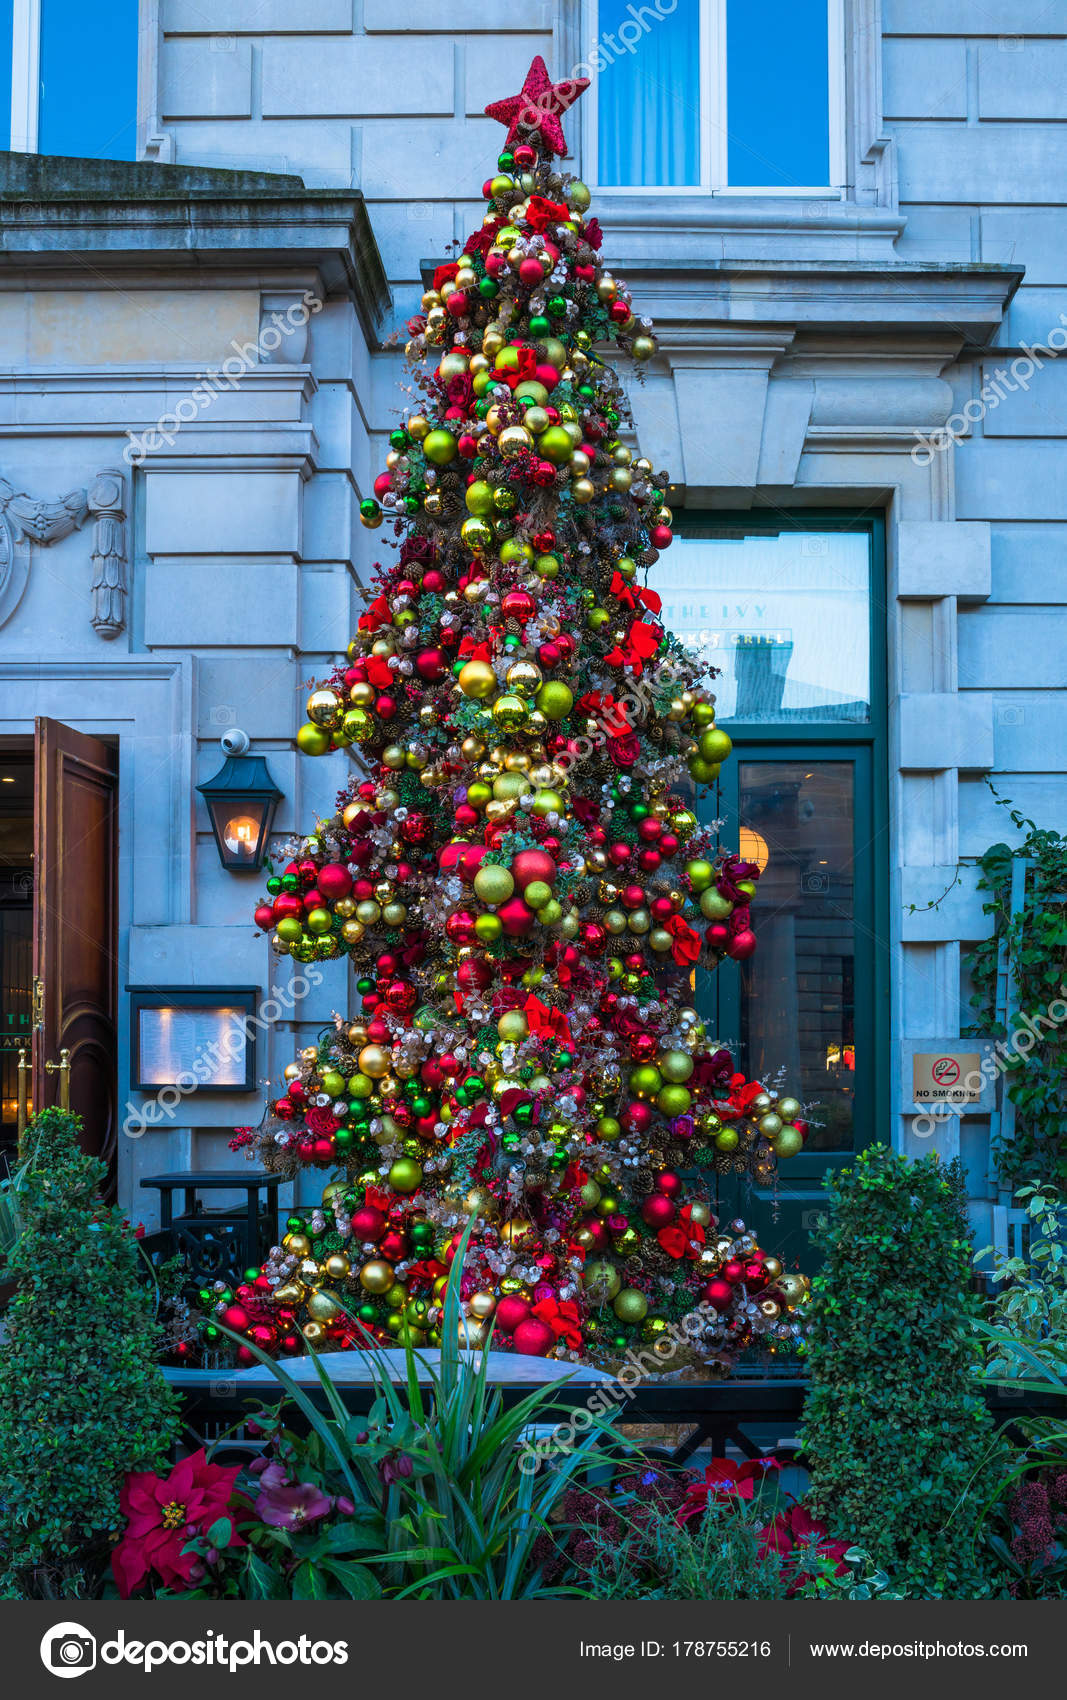 Christmas Tree Outside.Christmas Tree Outside The Ivy Market Restaurant In Covent